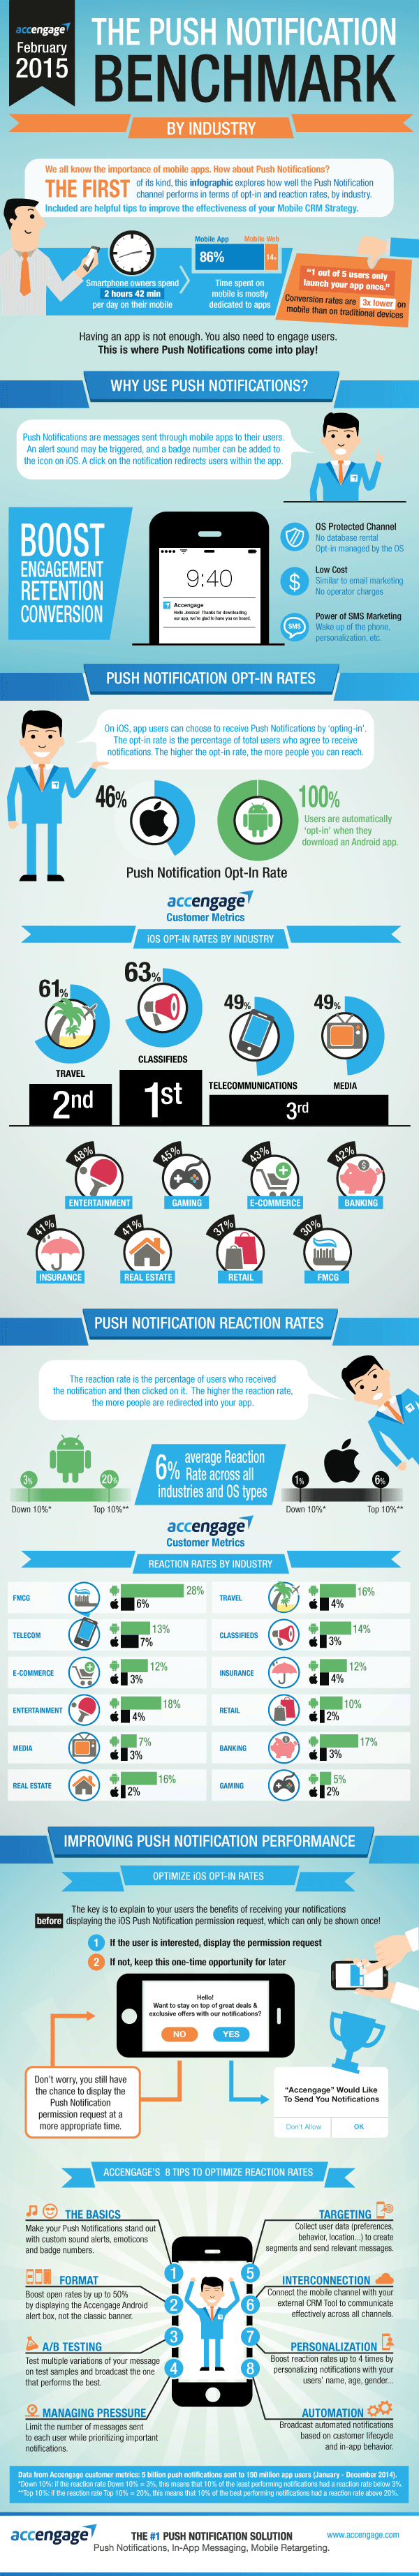 The-Push-Notification-Benchmark-Infographic-by-Accengage-infographic